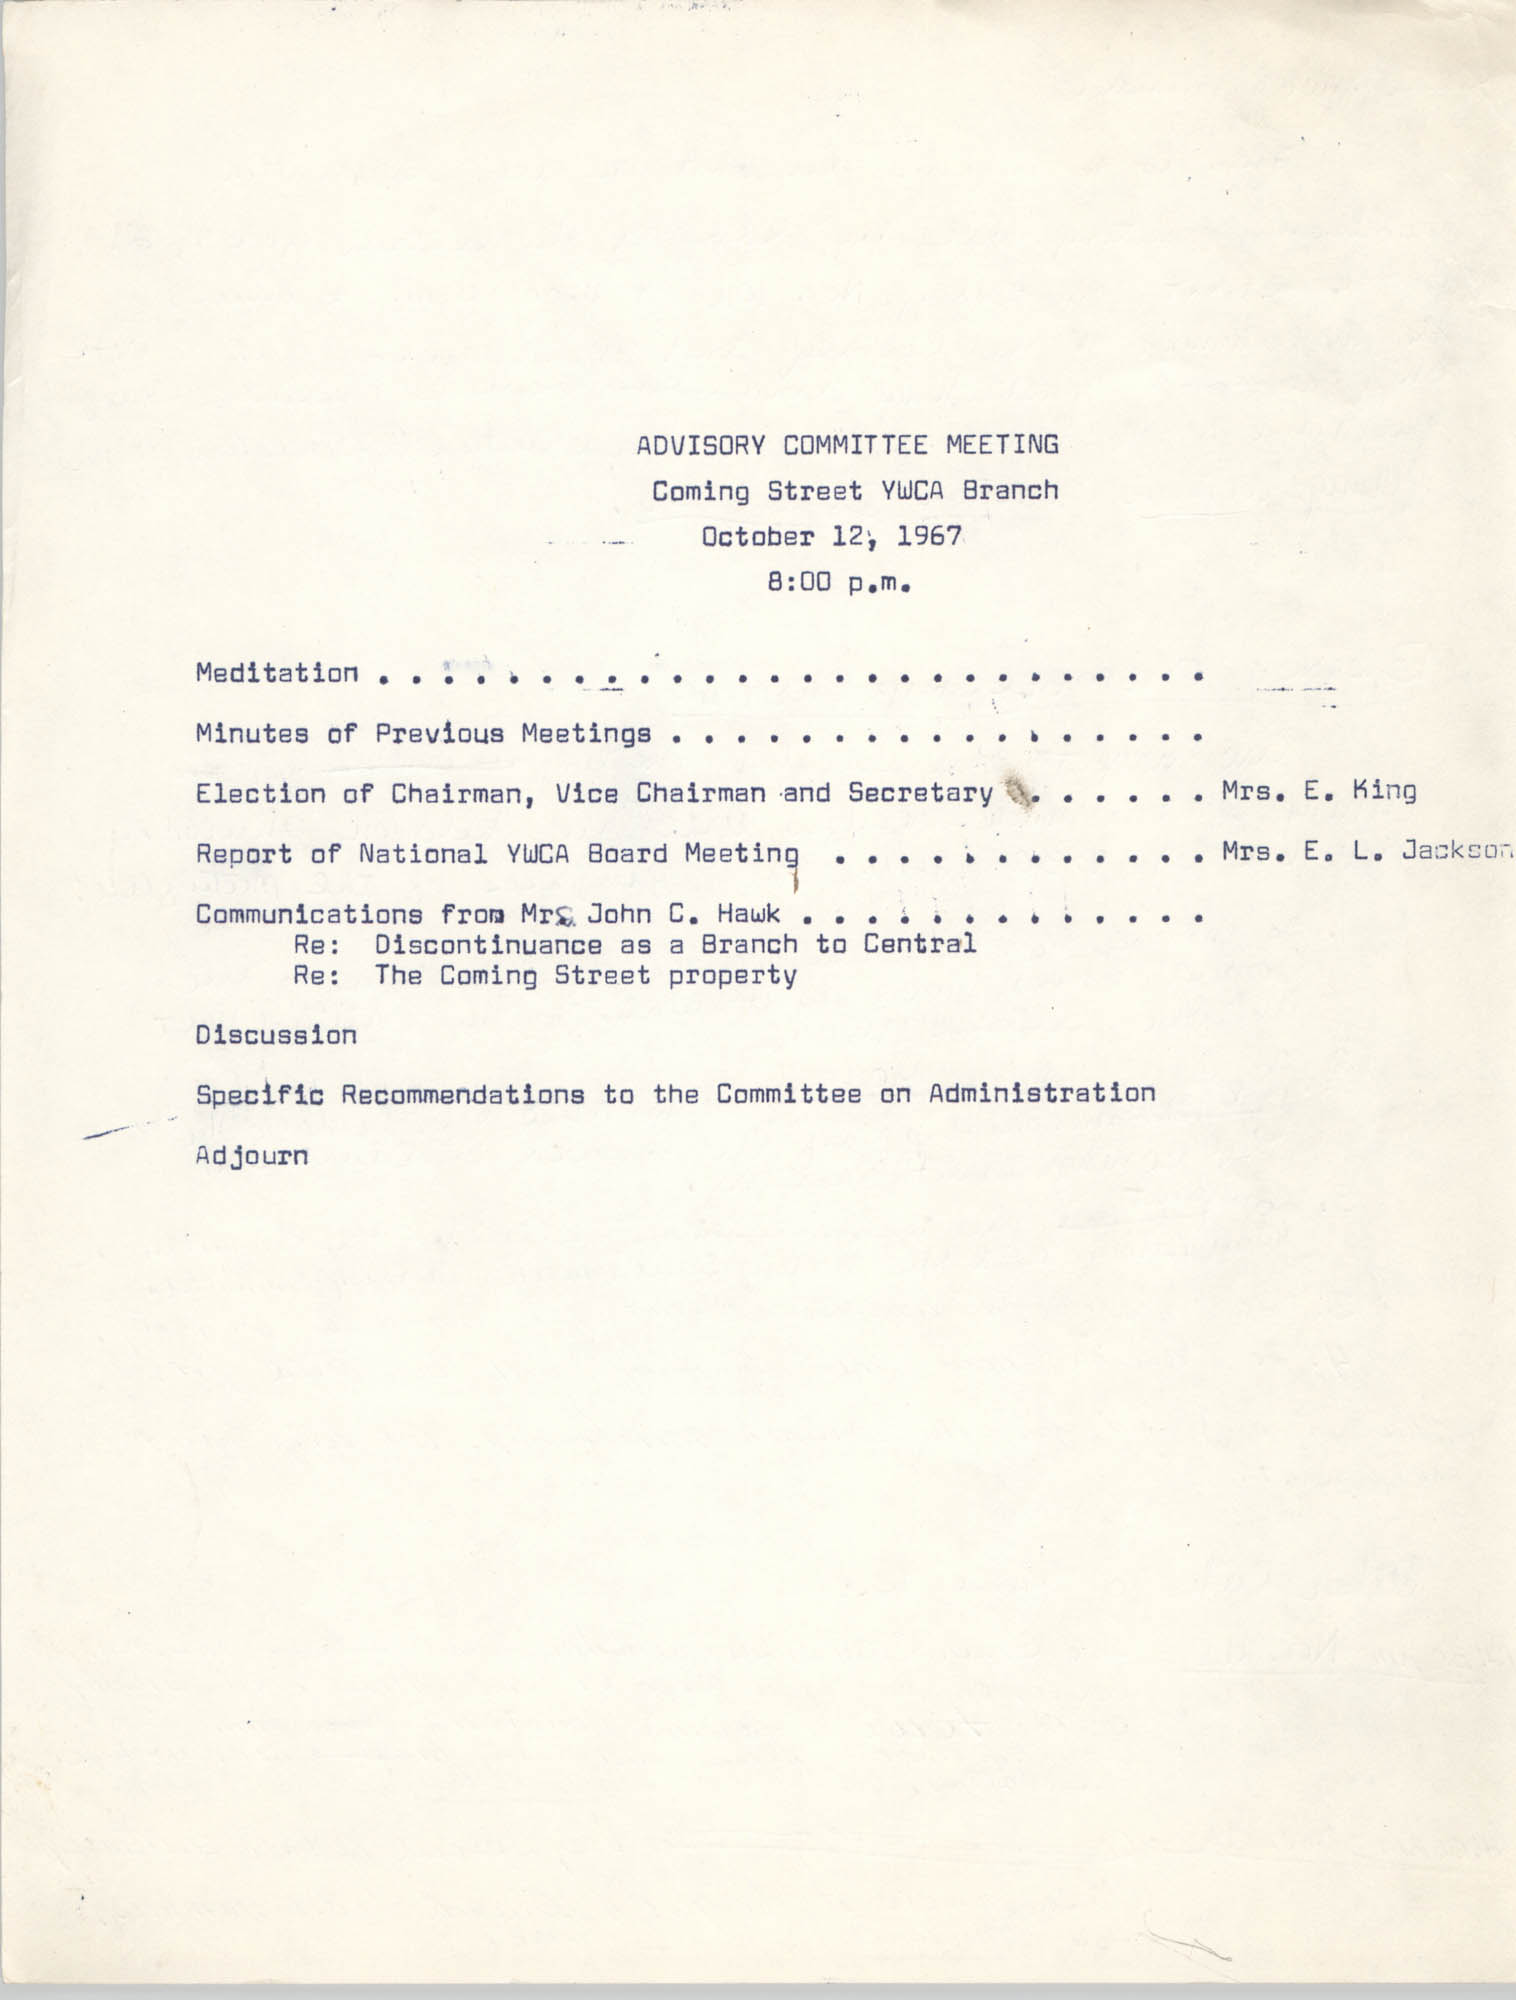 Agenda, Coming Street Y.W.C.A. Advisory Committee Meeting, October 12, 1967